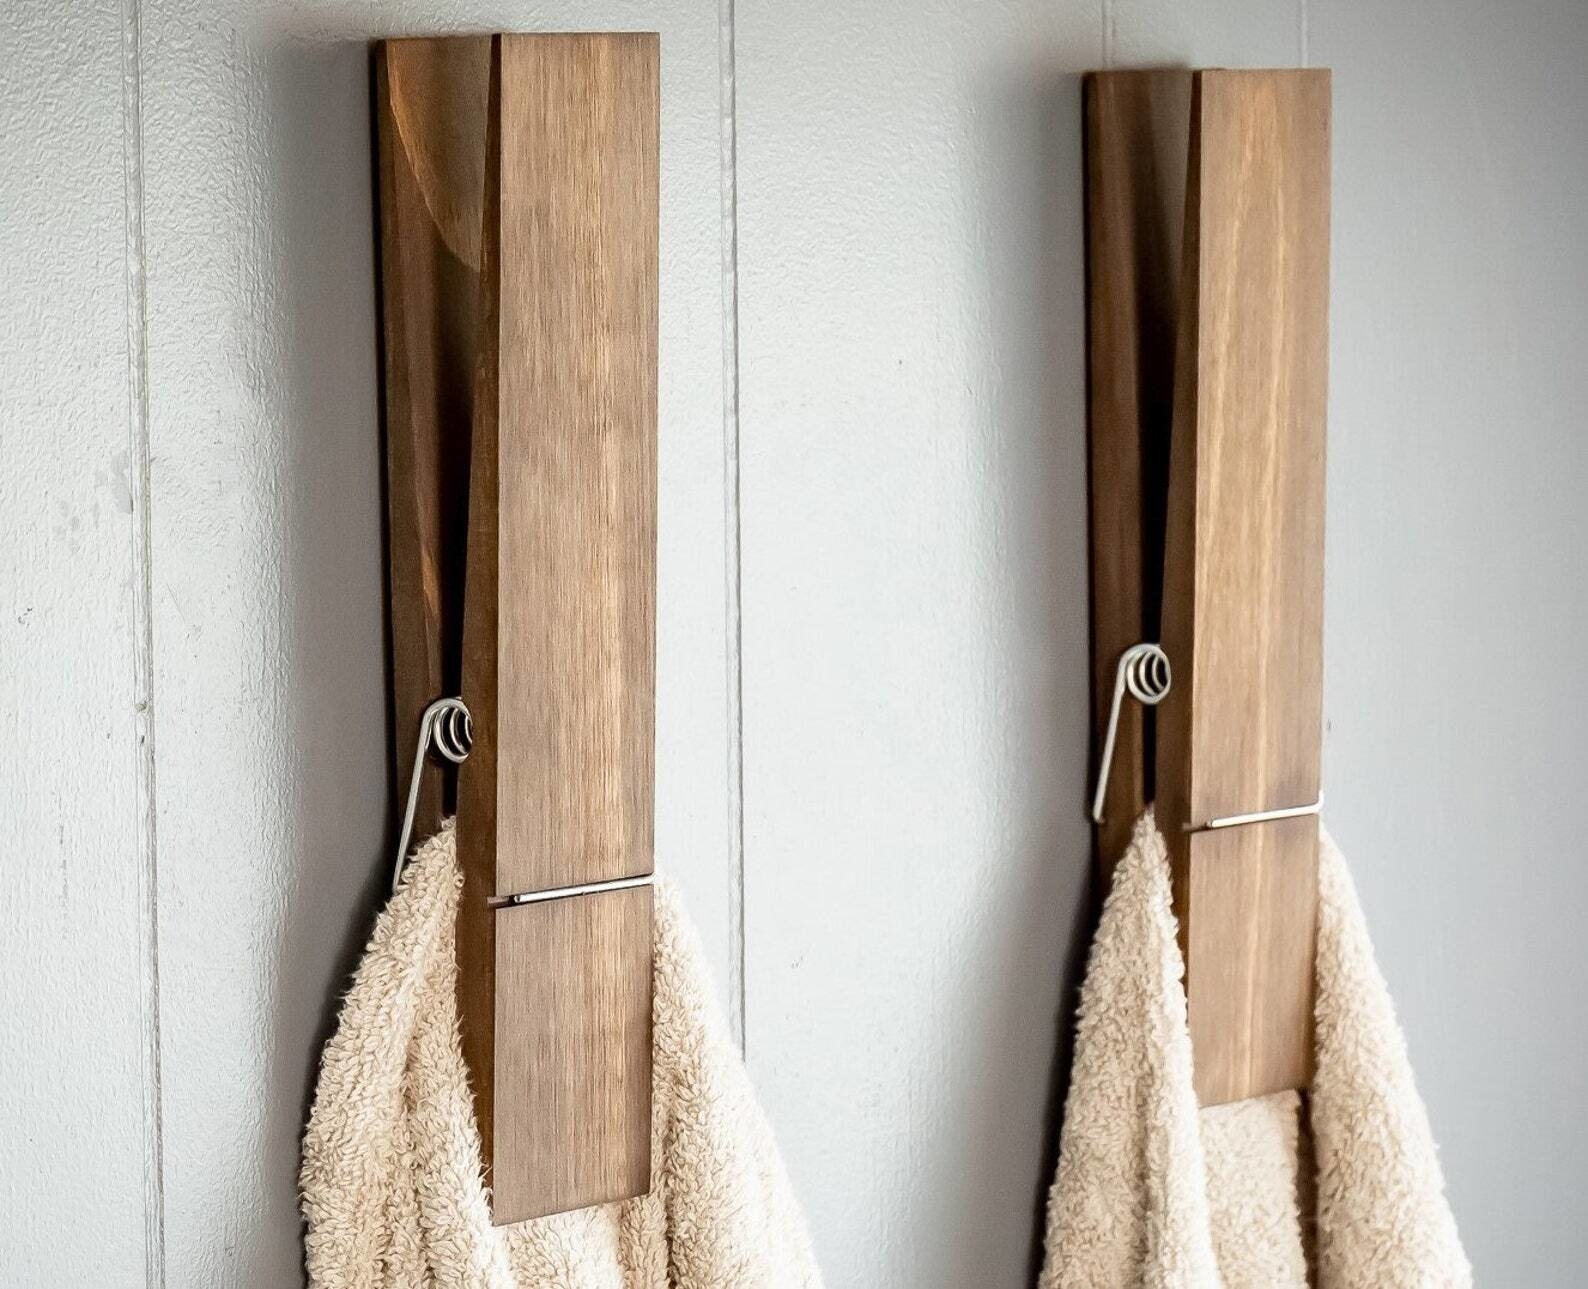 two giant clothespins on a wall and holding towels